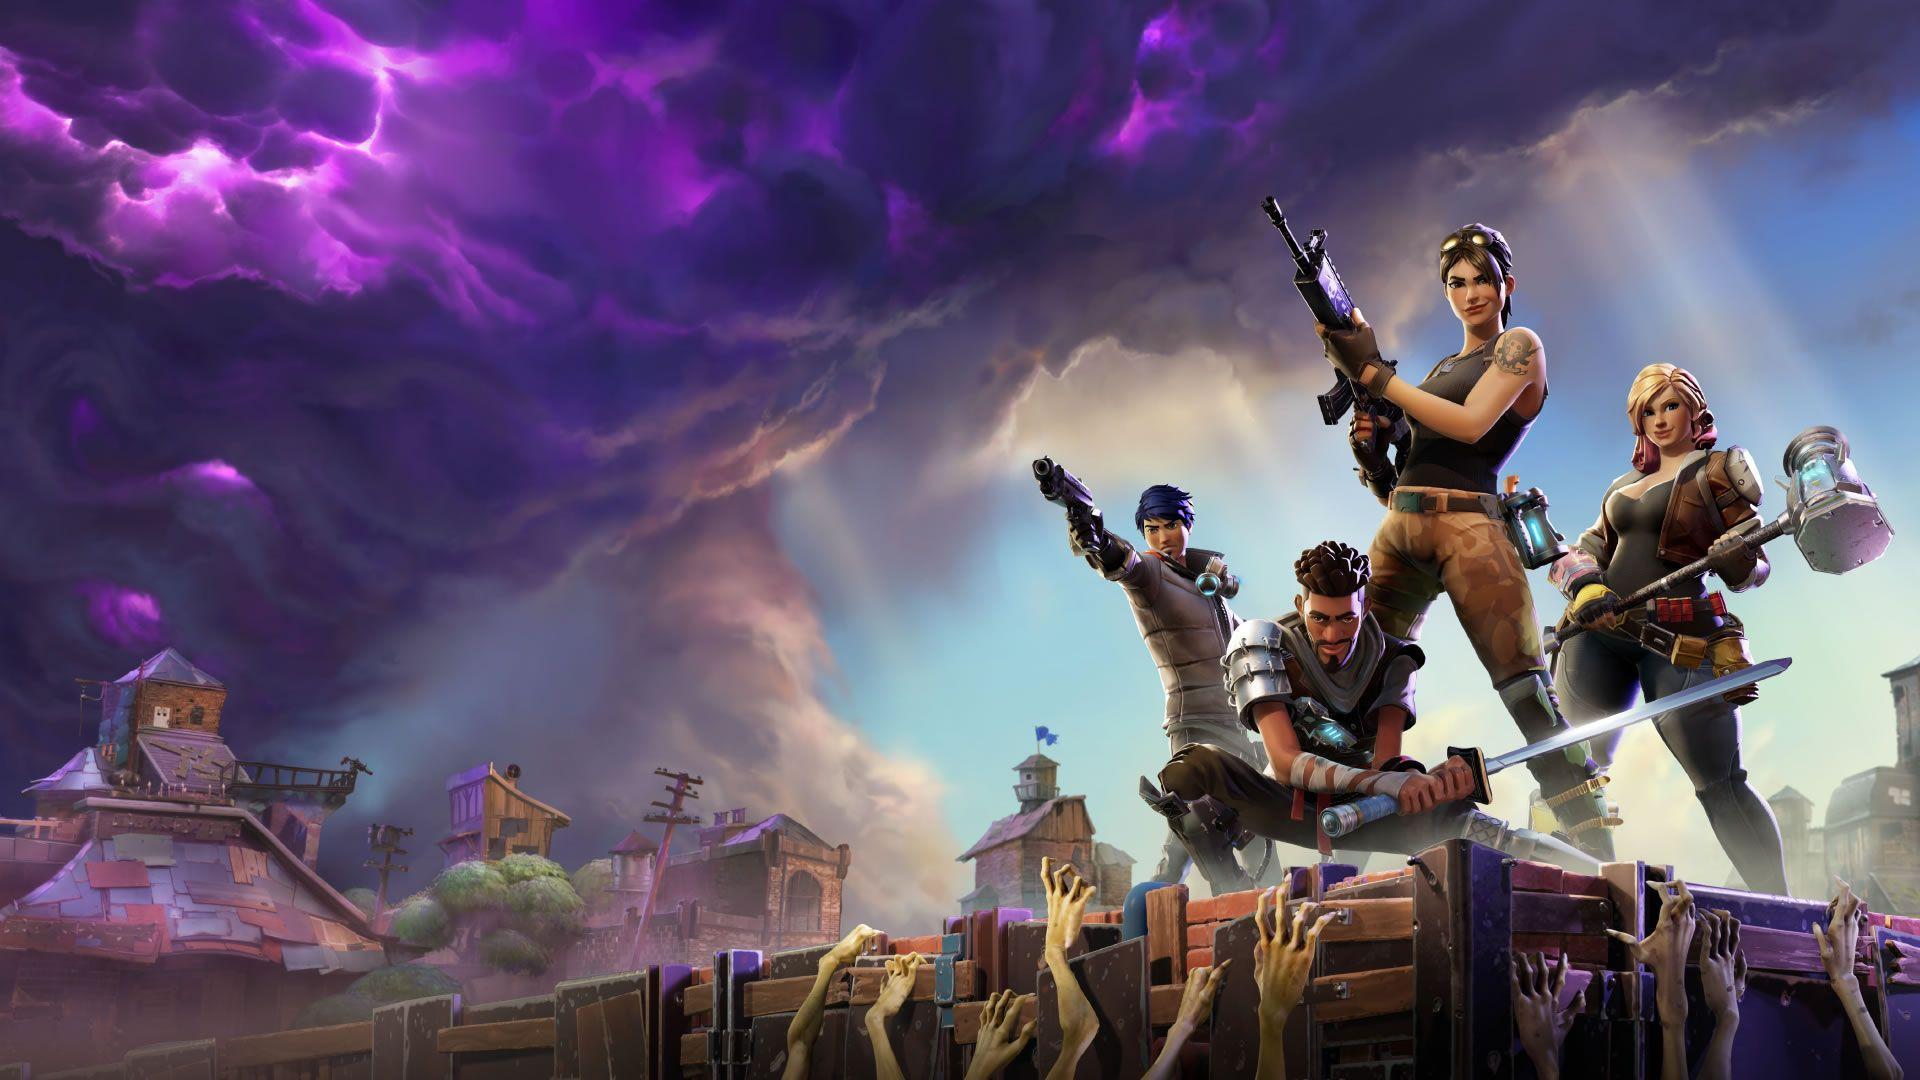 Fortnite #1 | PS4Wallpapers.com